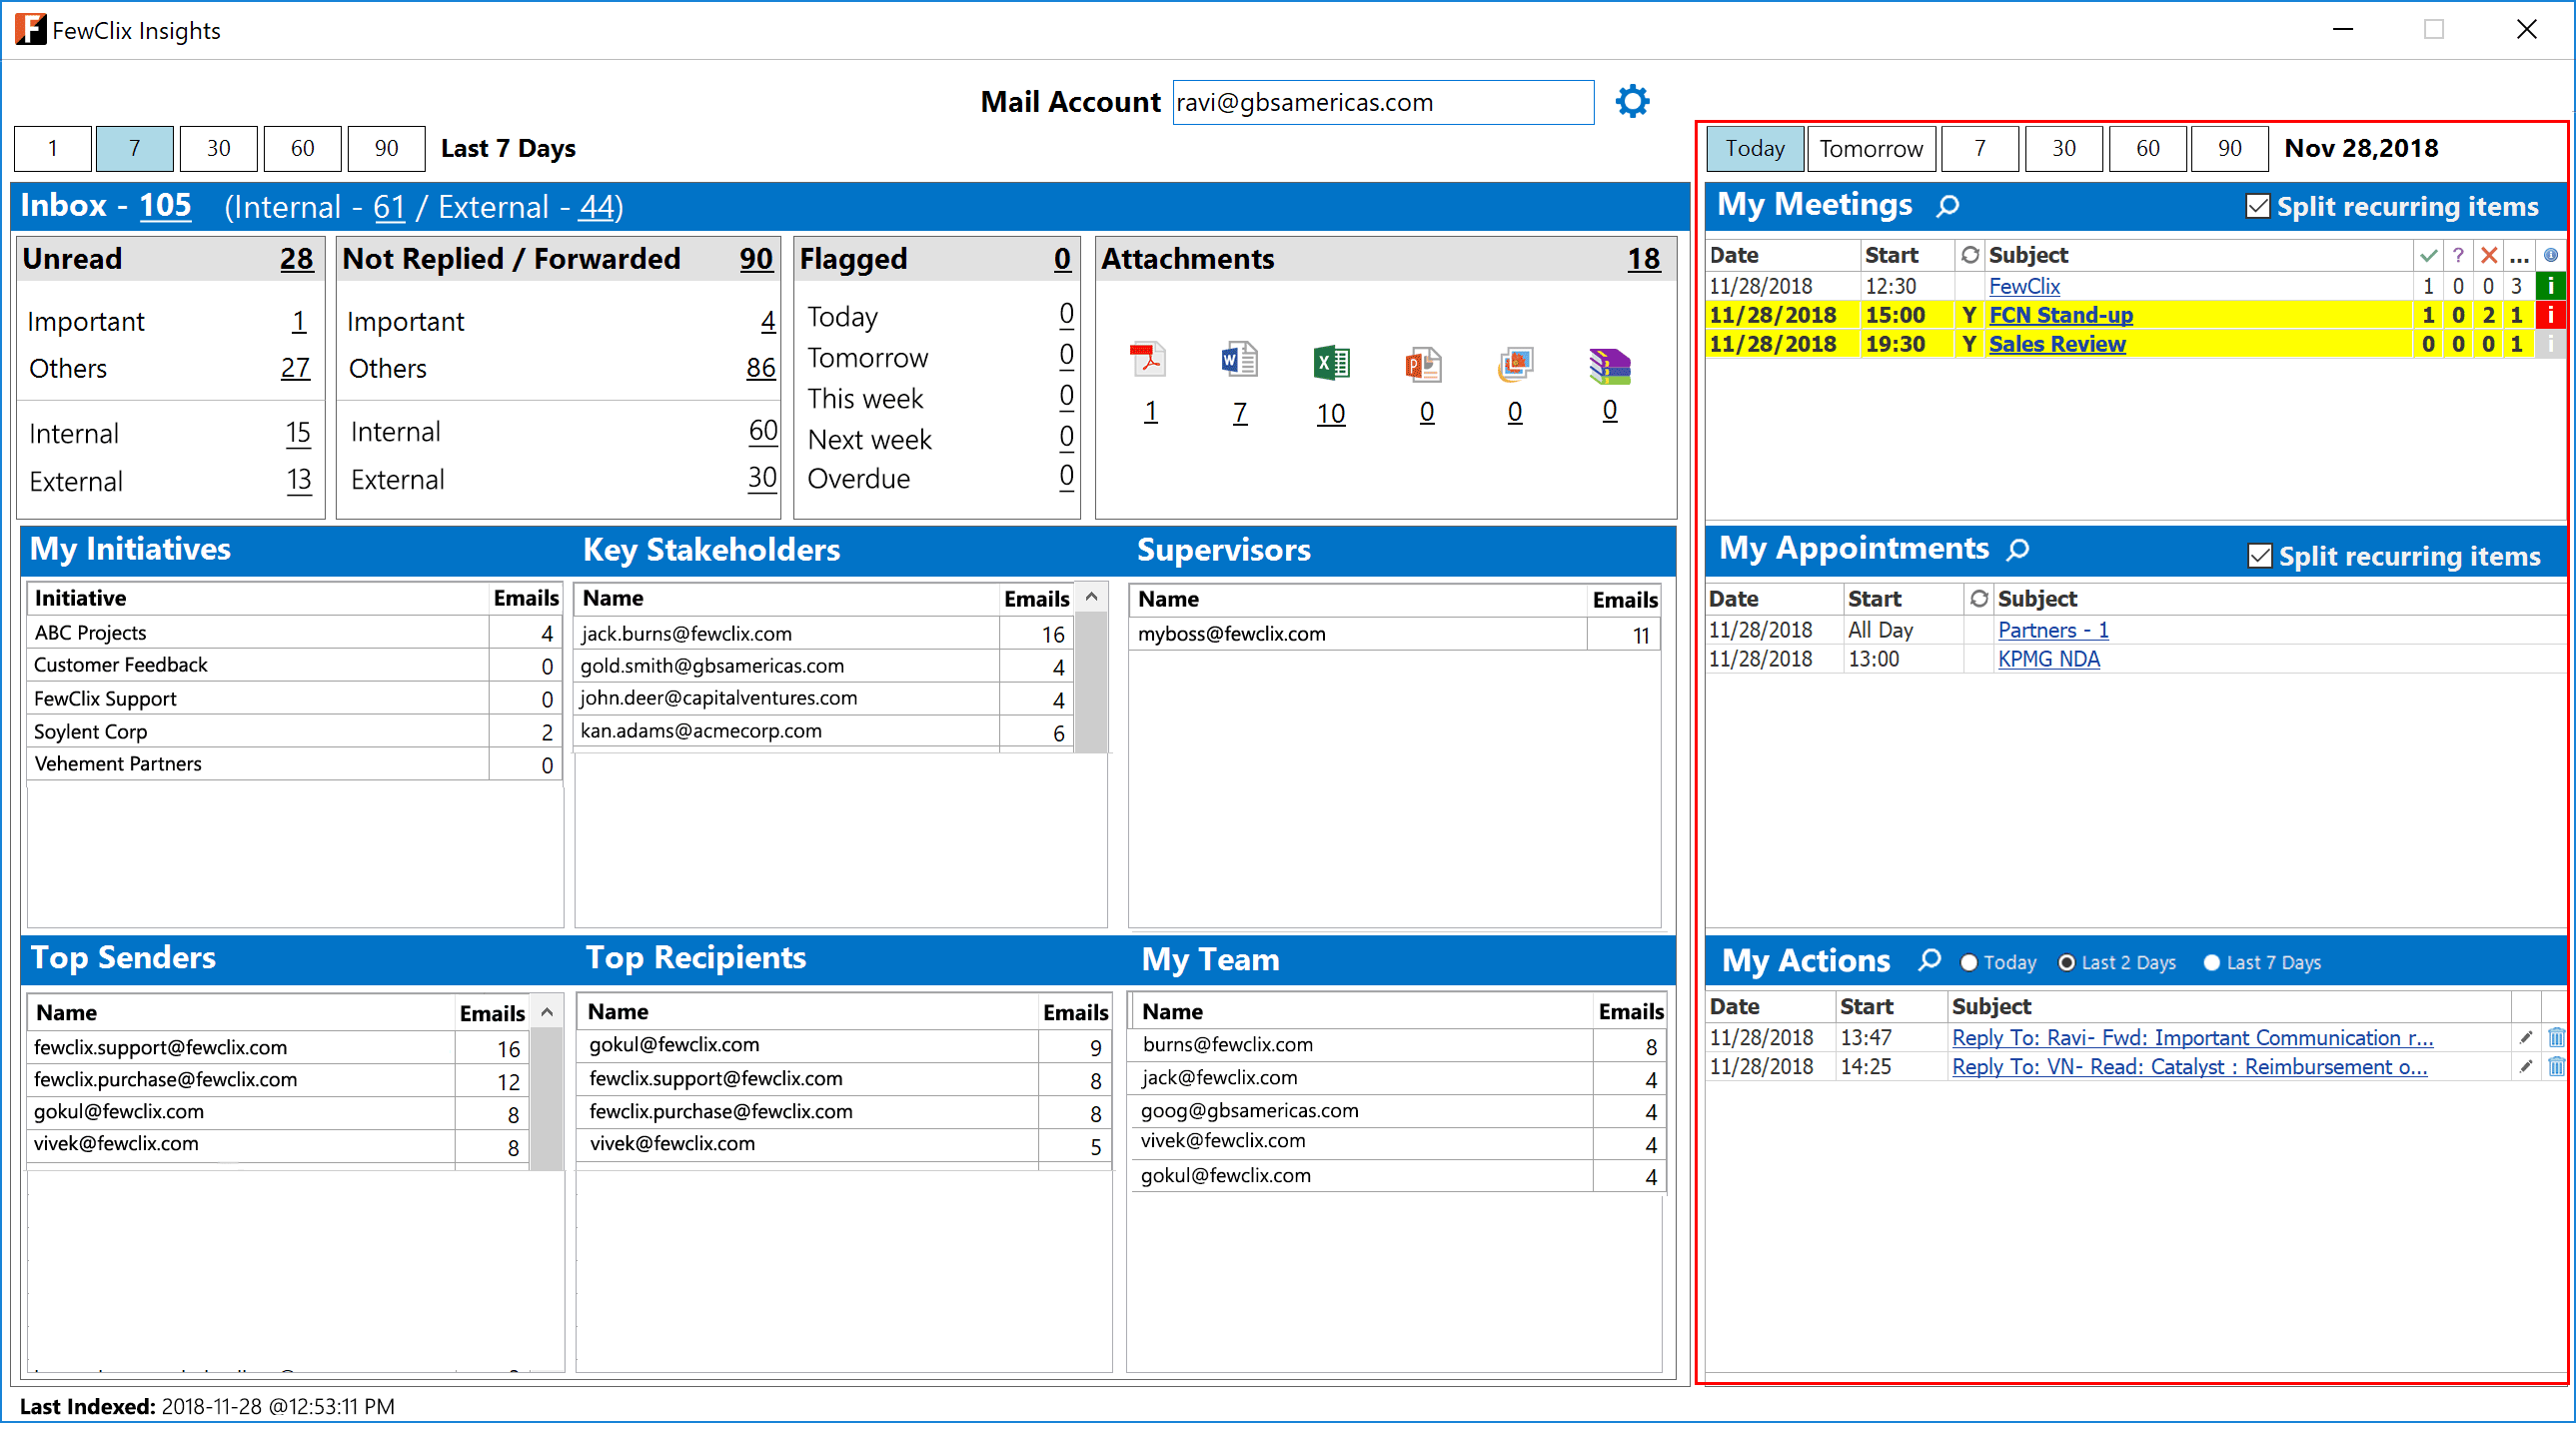 Outlook screen with FewClix for Outlook